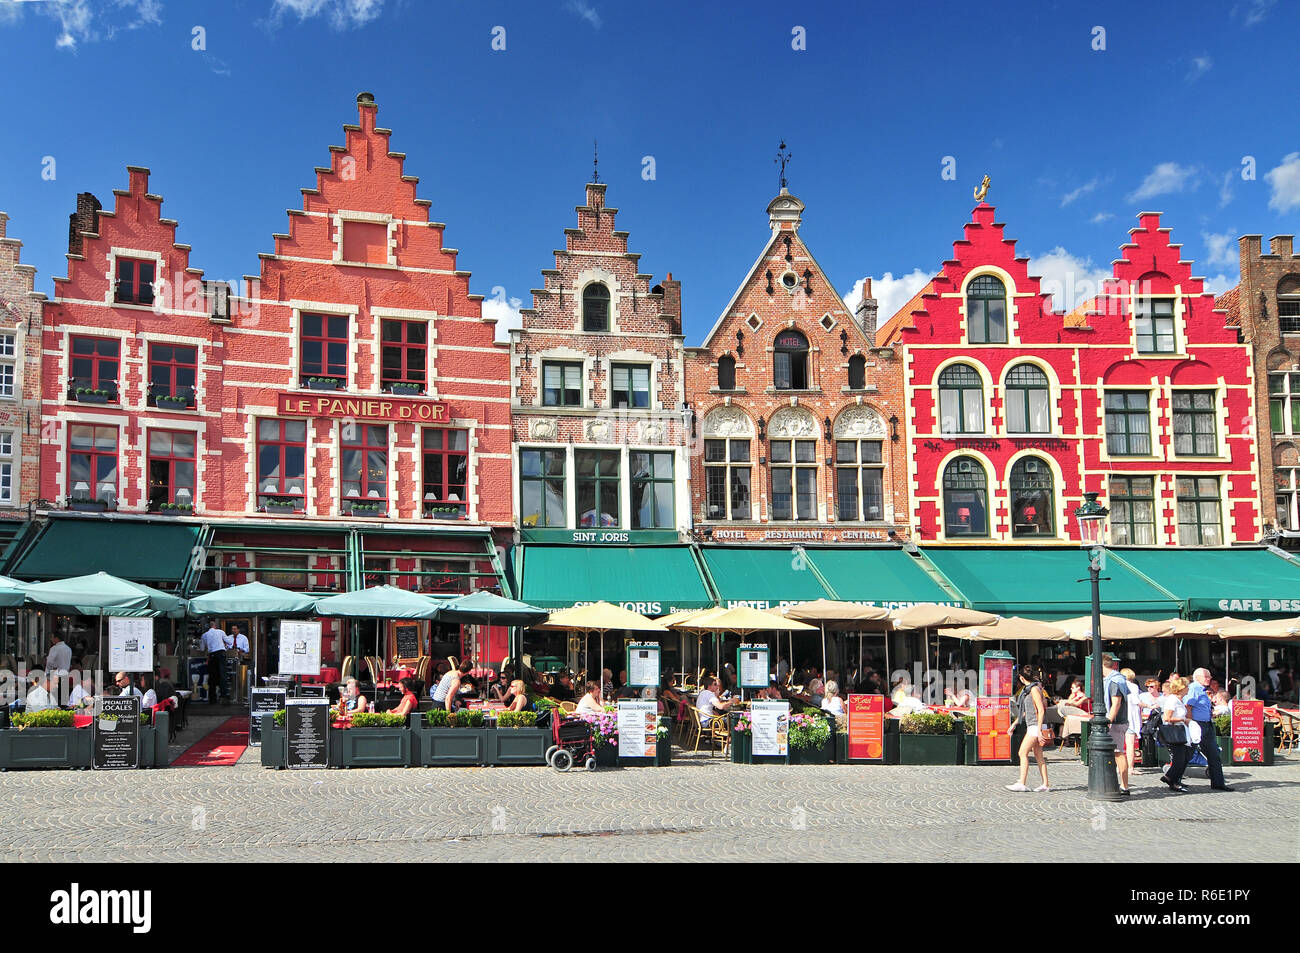 Medieval Style Shops And Restaurants Around The Market Place (Grote Markt) In Bruges Belgium Stock Photo